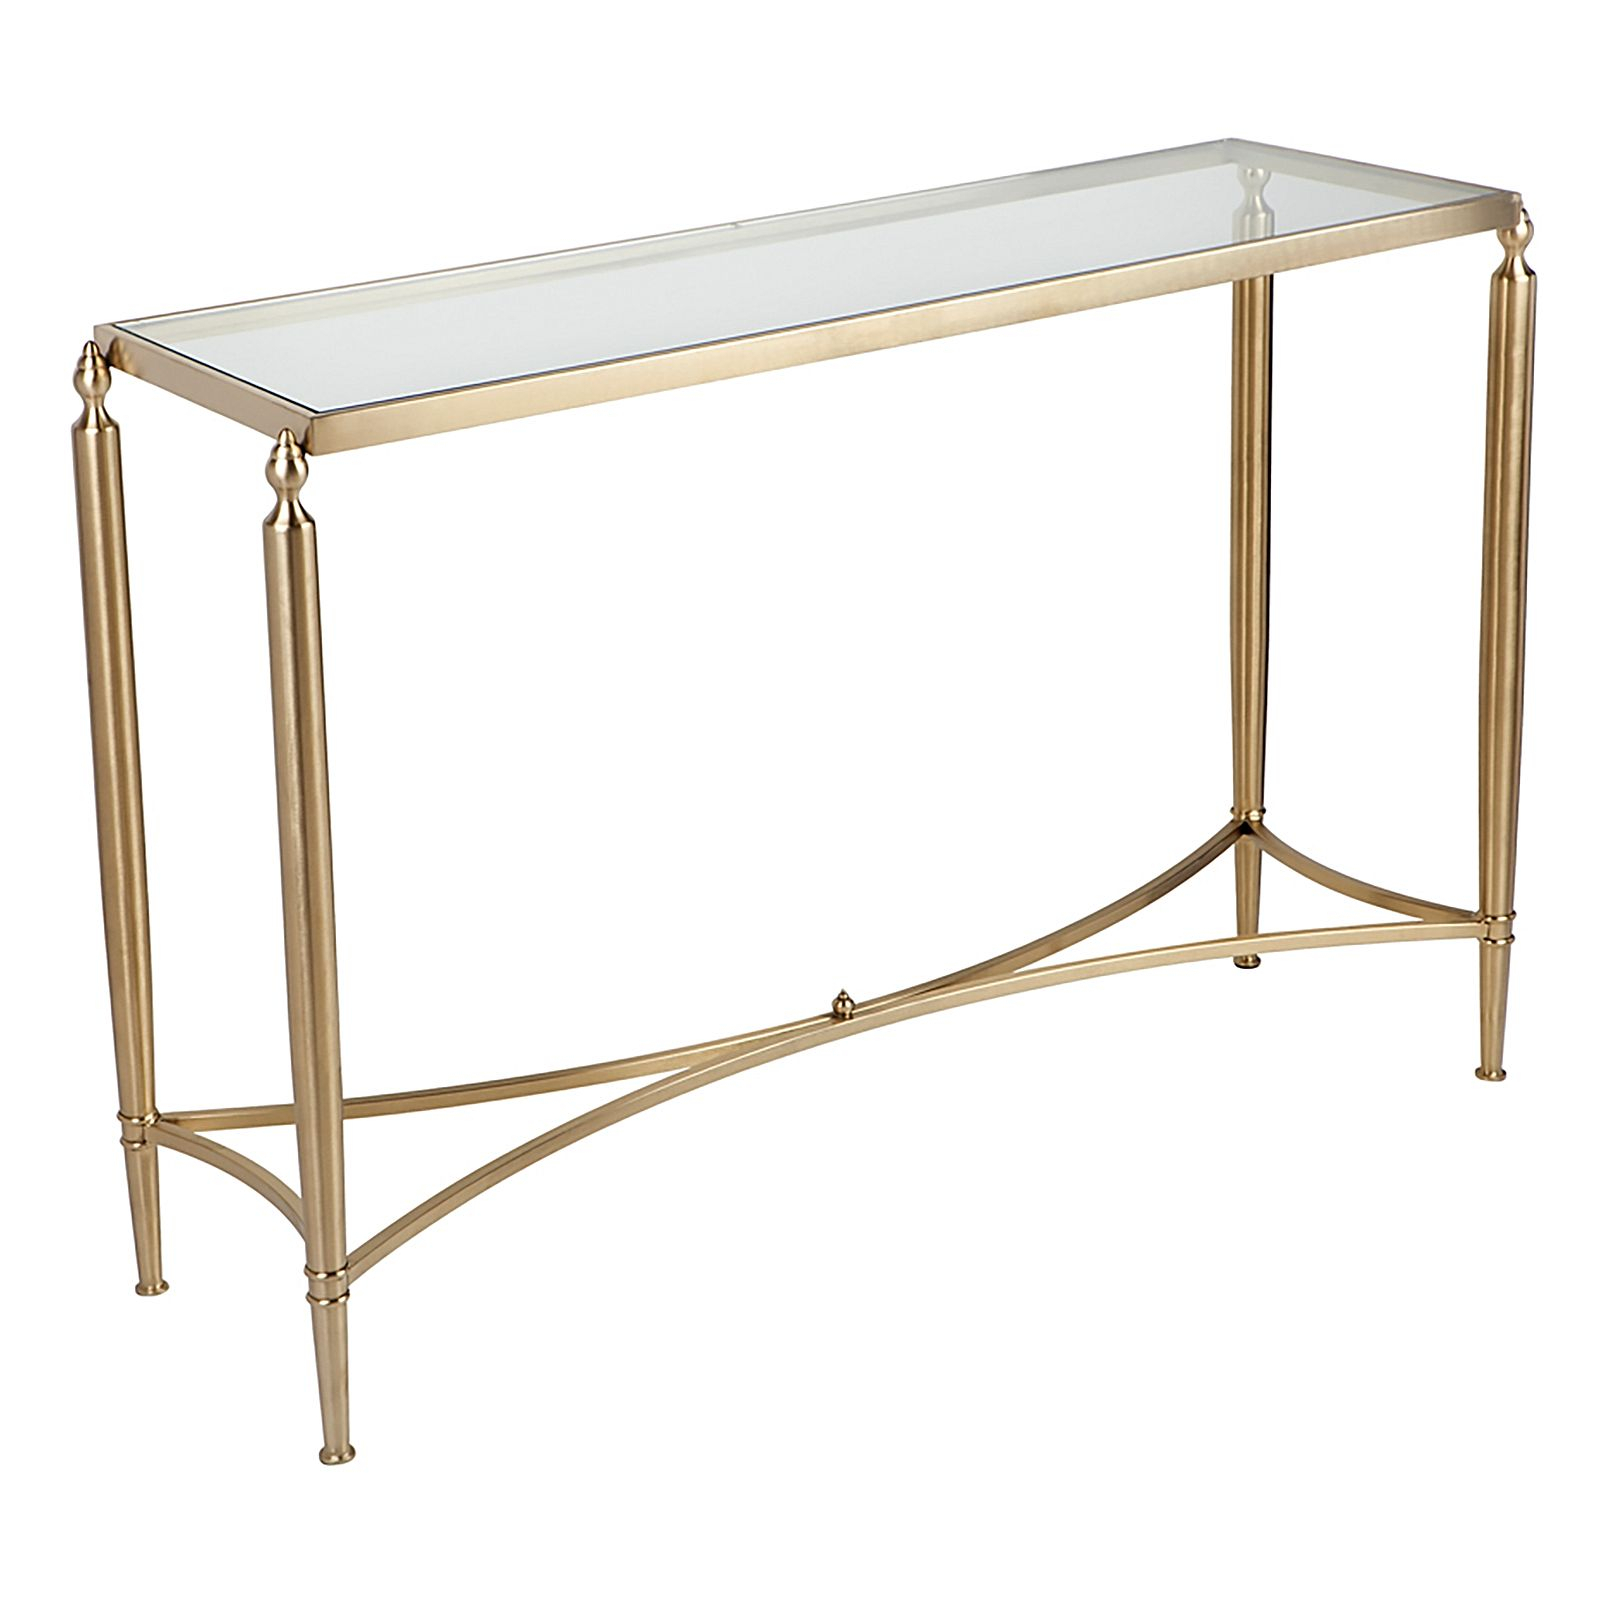 Jacques Console Table, Goldcafe Lighting & Living | Zanui for Jacque Console Tables (Image 20 of 30)